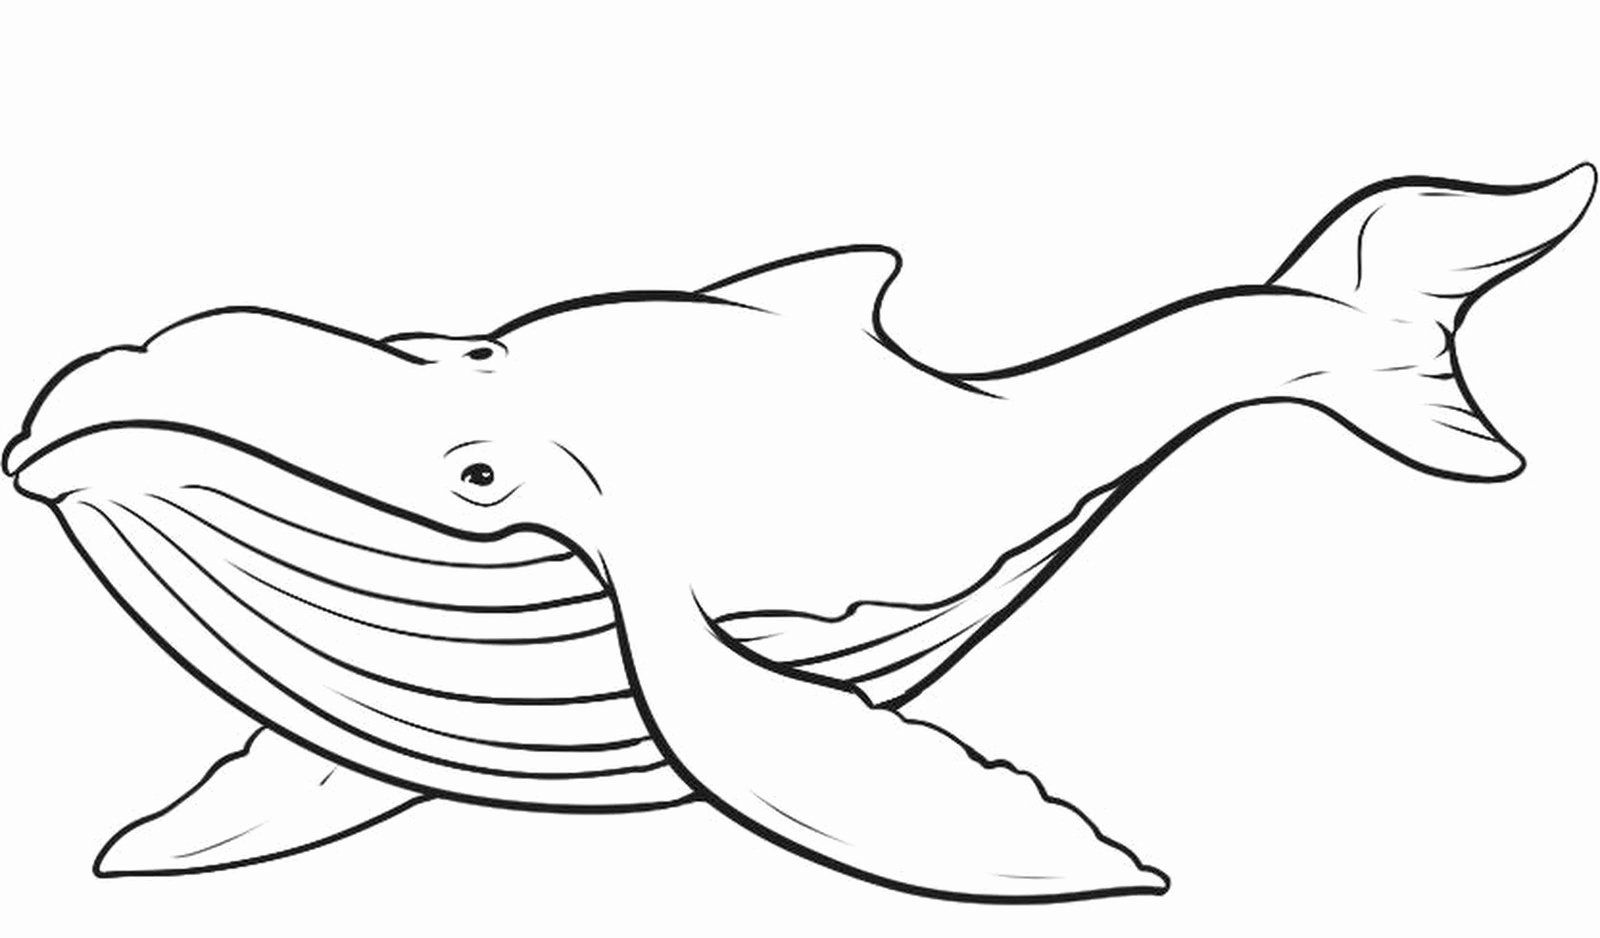 Blue Whale Coloring Page Elegant Free Printable Whale Coloring Pages For Kids Whale Coloring Pages Animal Coloring Pages Shark Coloring Pages